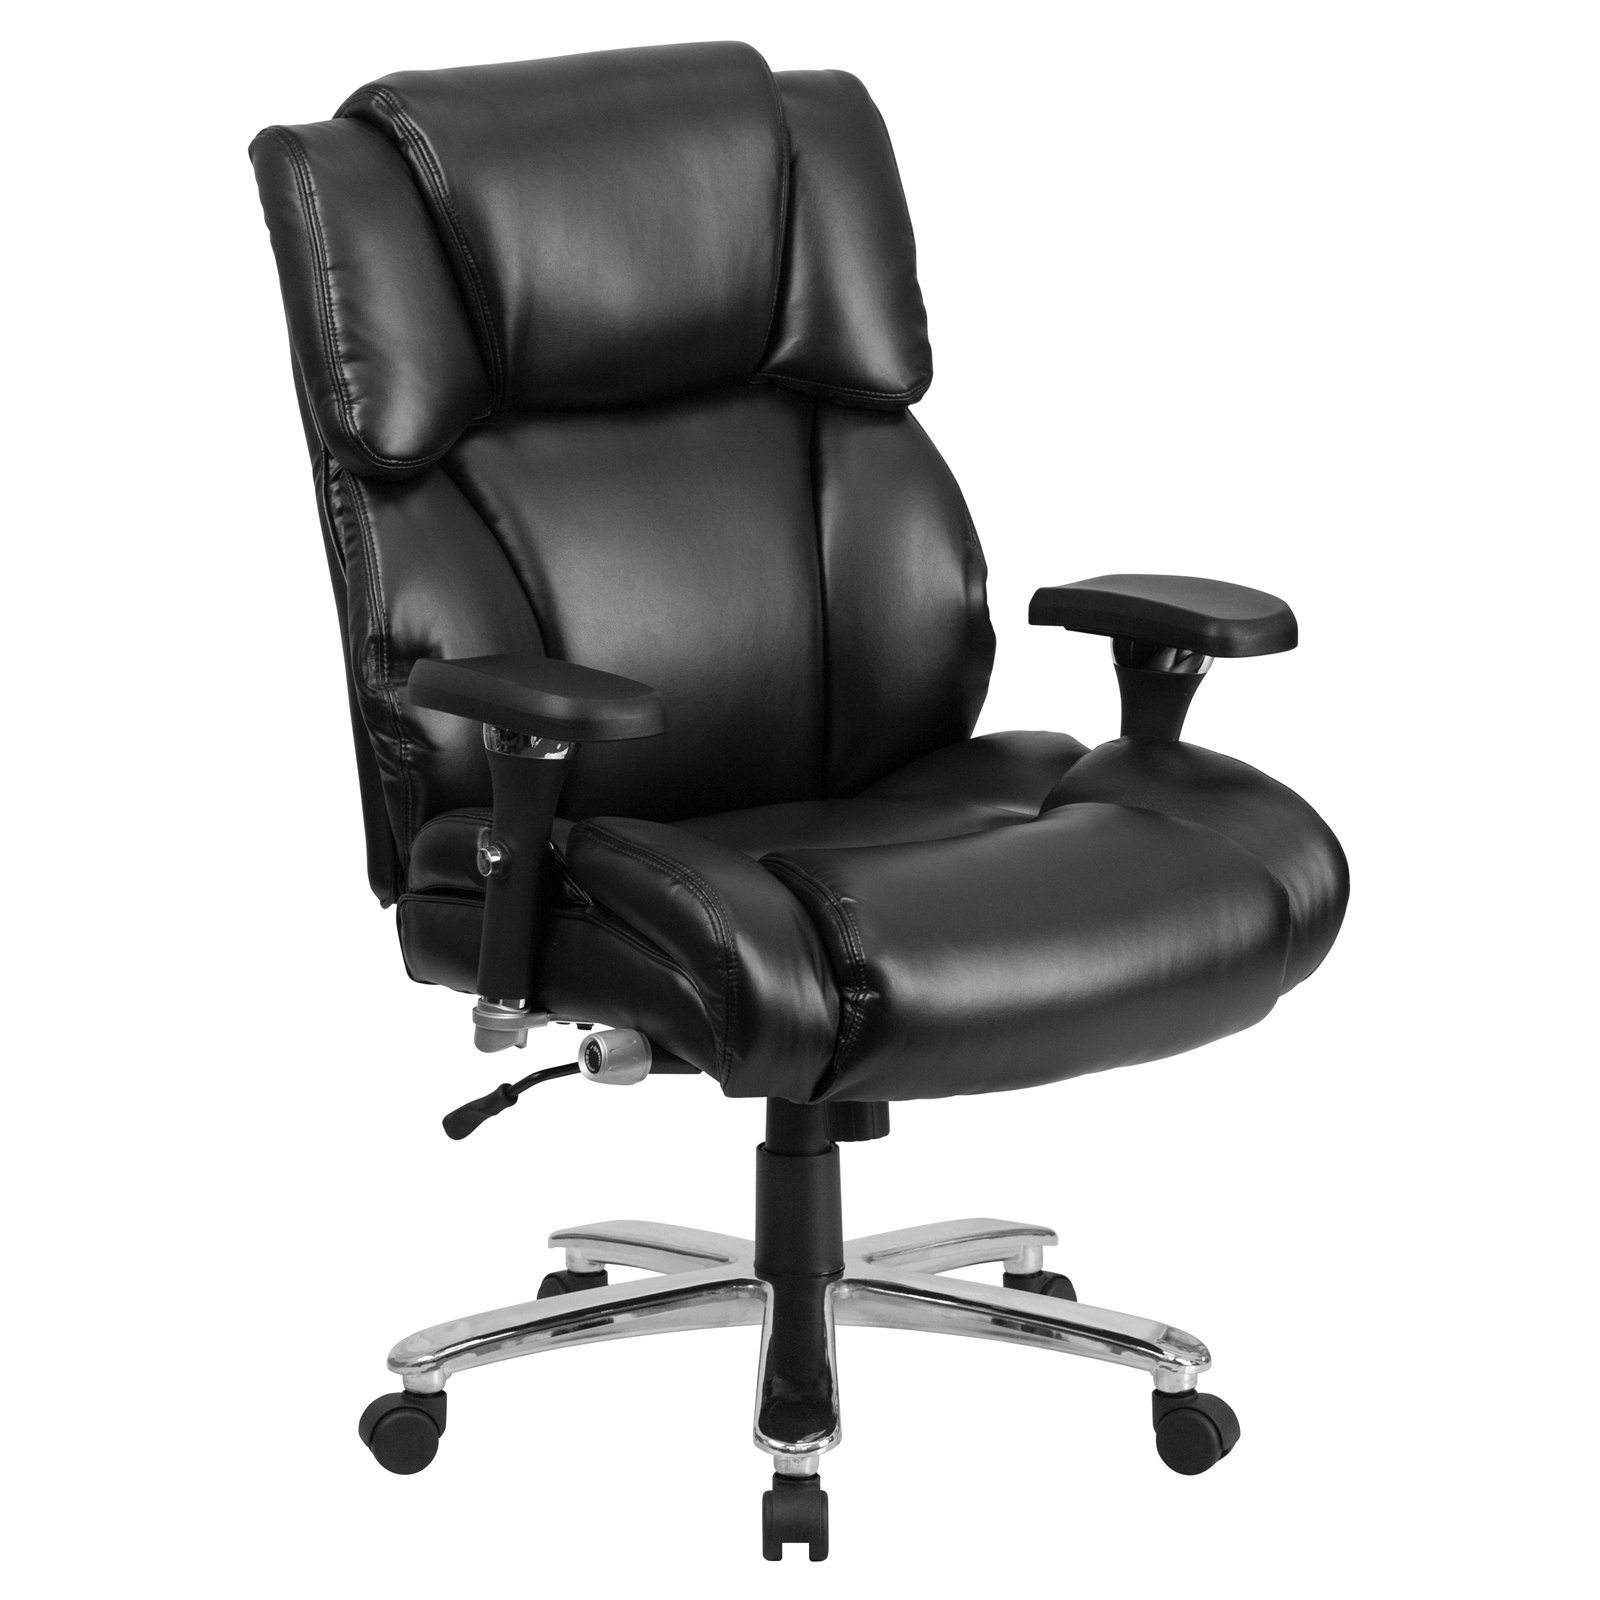 Flash Furniture HERCULES Series 24/7 Intensive Use, Multi-Shift, Big and Tall 400 lb Capacity Black Leather Executive Swivel Chair with Lumbar Support Knob